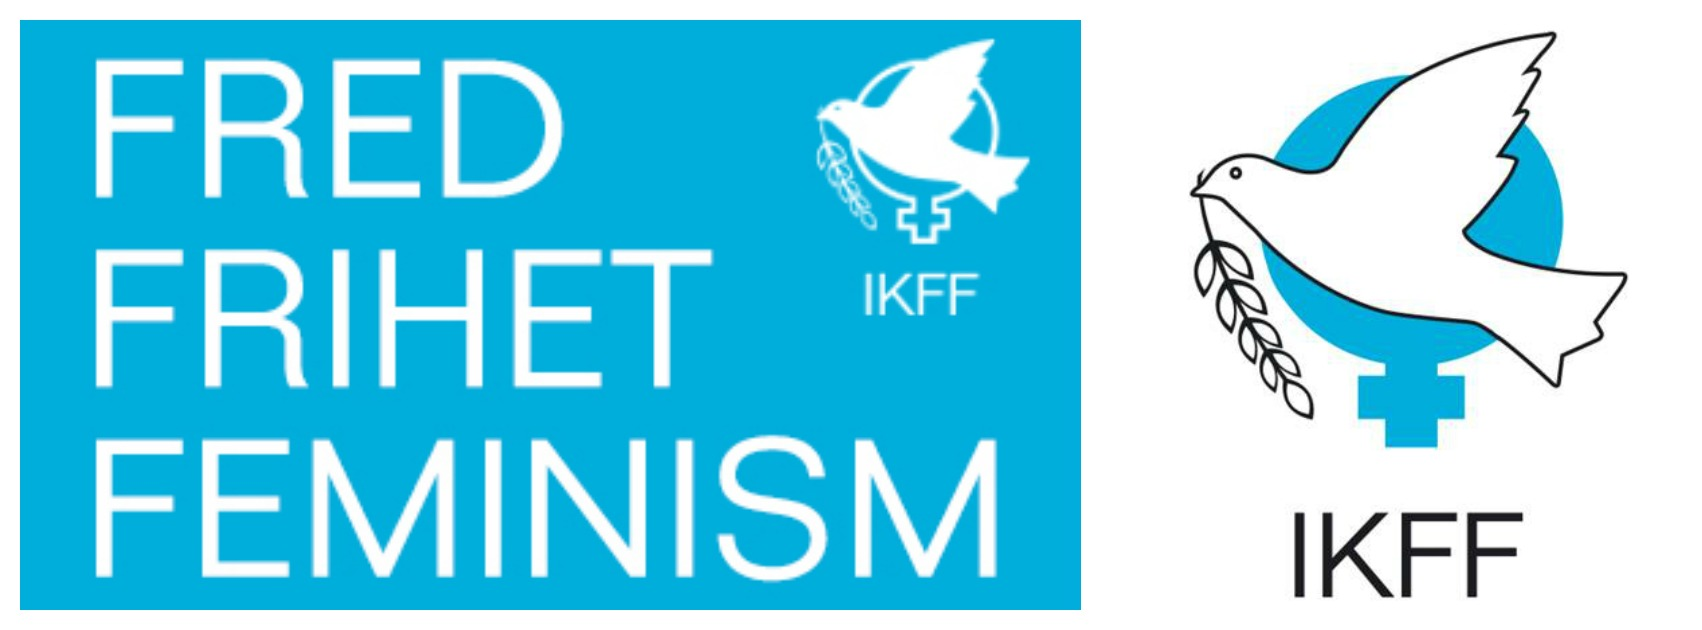 Internationella Kvinnoförbundet för Fred och Frihet (IKFF) är den svenska sektionen av den internationella fredsorganisationen Women's International League för Peace and Freedom (WILPF).